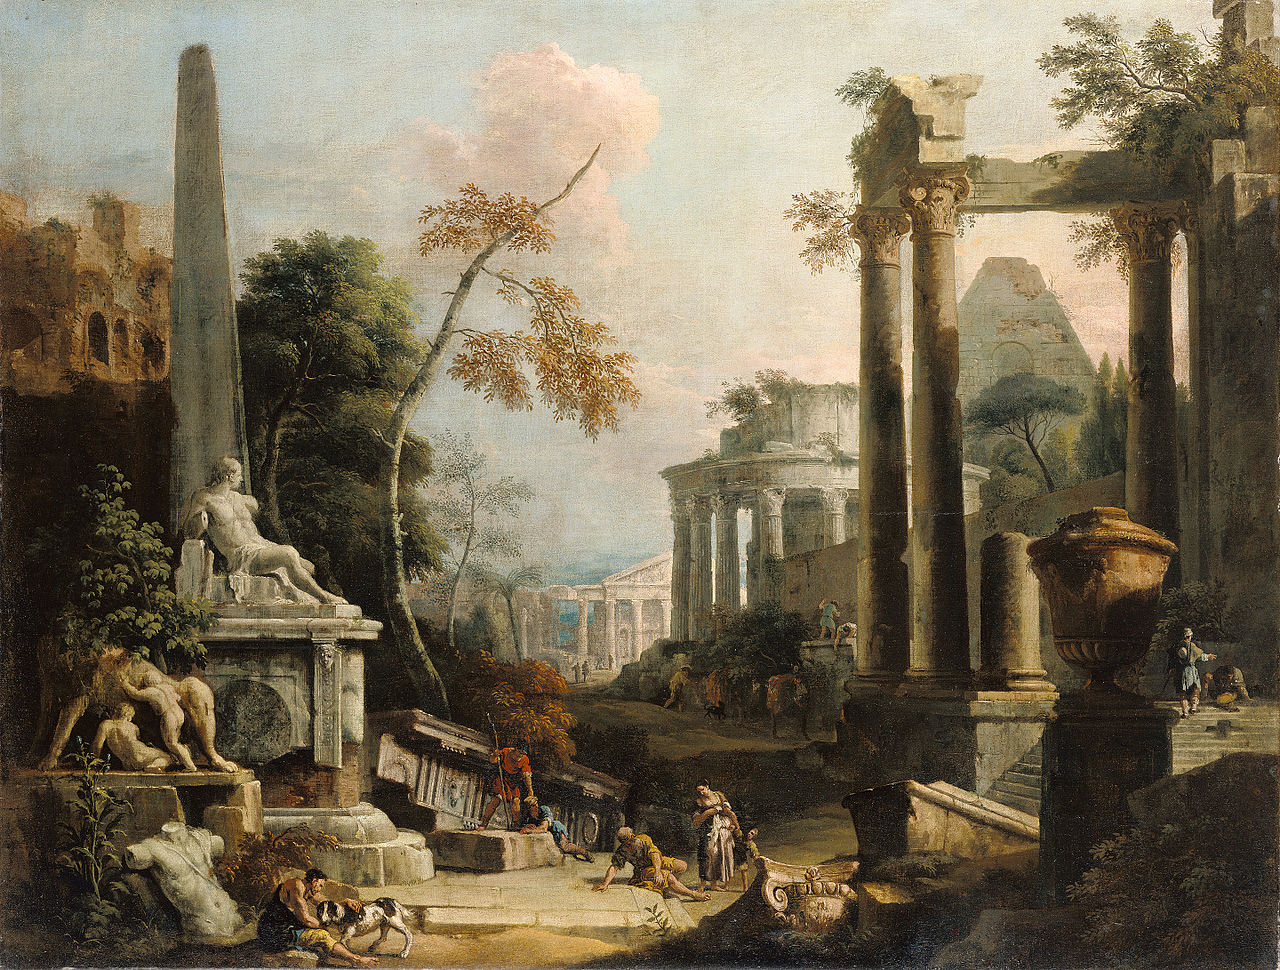 Marco Ricci and Sebastiano Ricci, Landscape with Classical Ruins and Figures,